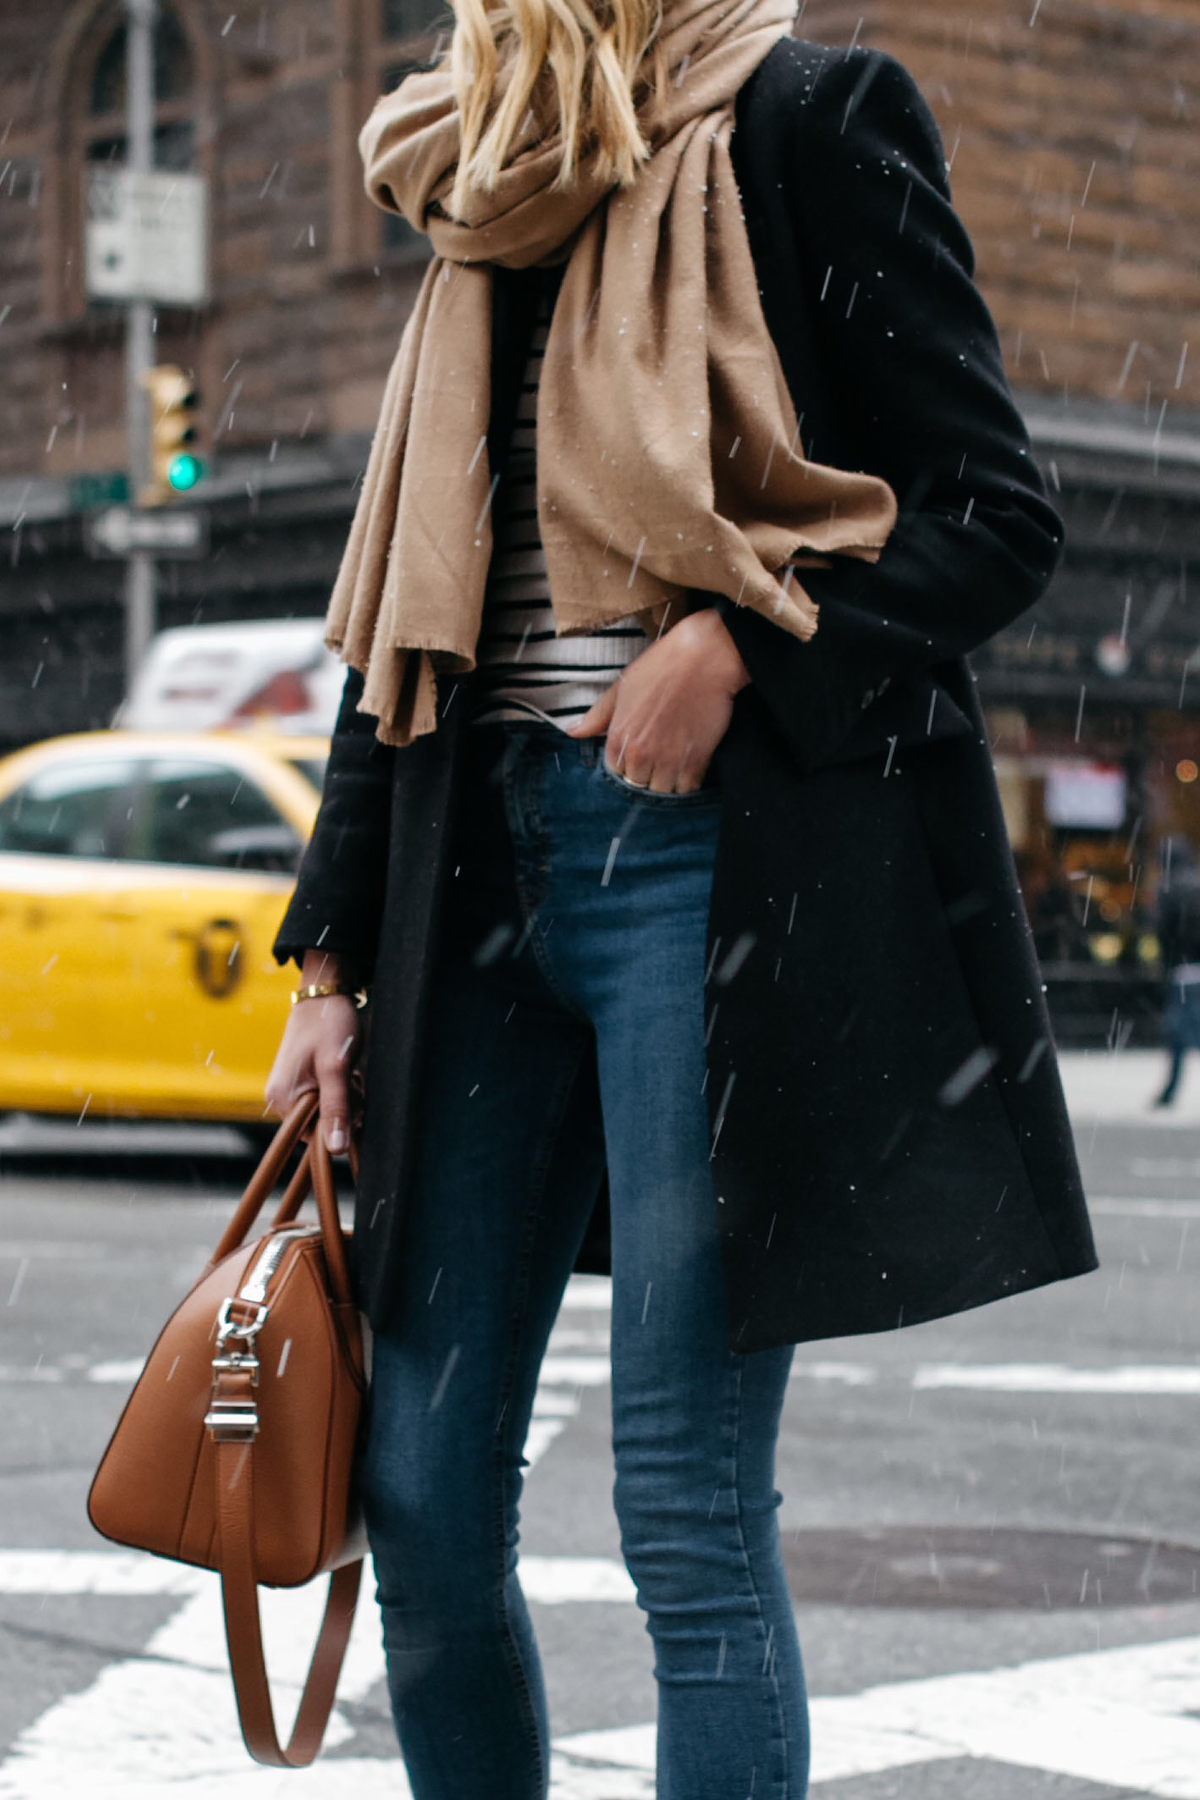 Tan Scarf Black Wool Coat Striped Top Denim Skinny Jeans Fashion Jackson Dallas Blogger Fashion Blogger Street Style NYC